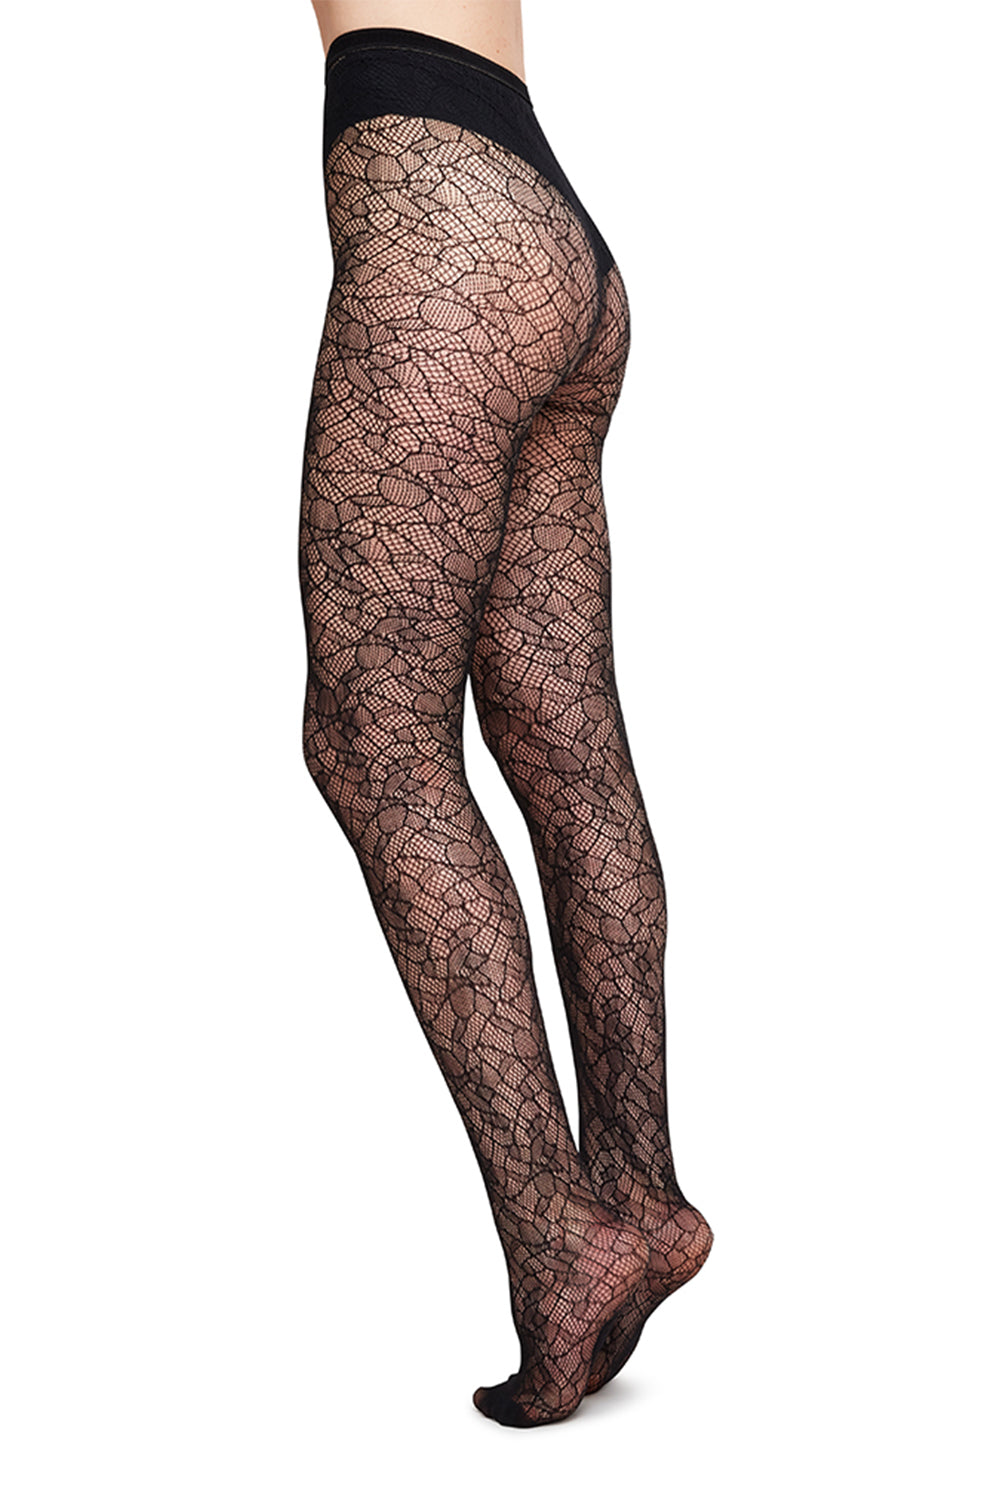 Edith Lace Tights in Black